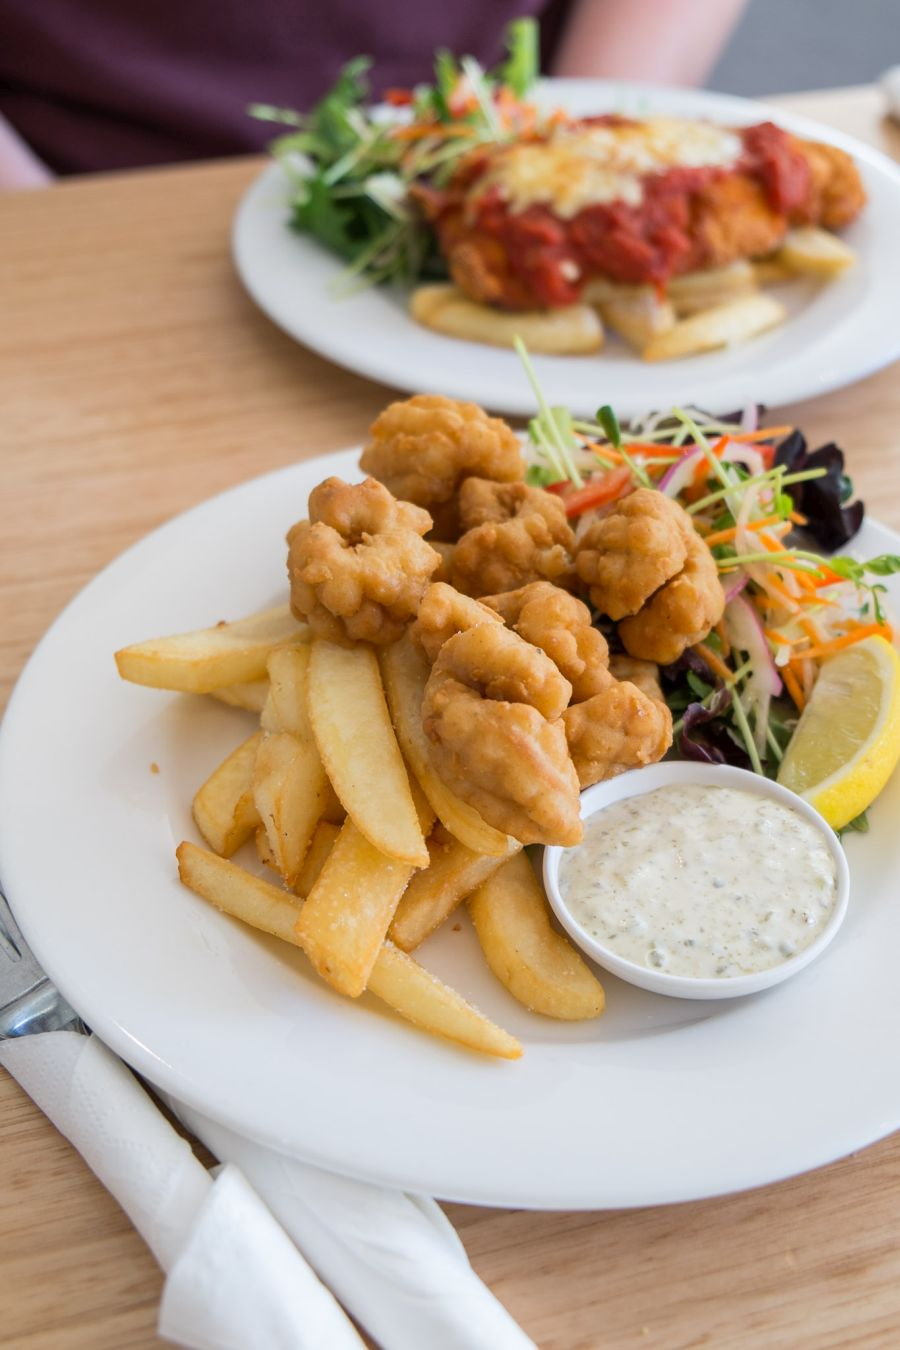 Salt and pepper squid with chips and salad (AU$15 - tour menu)